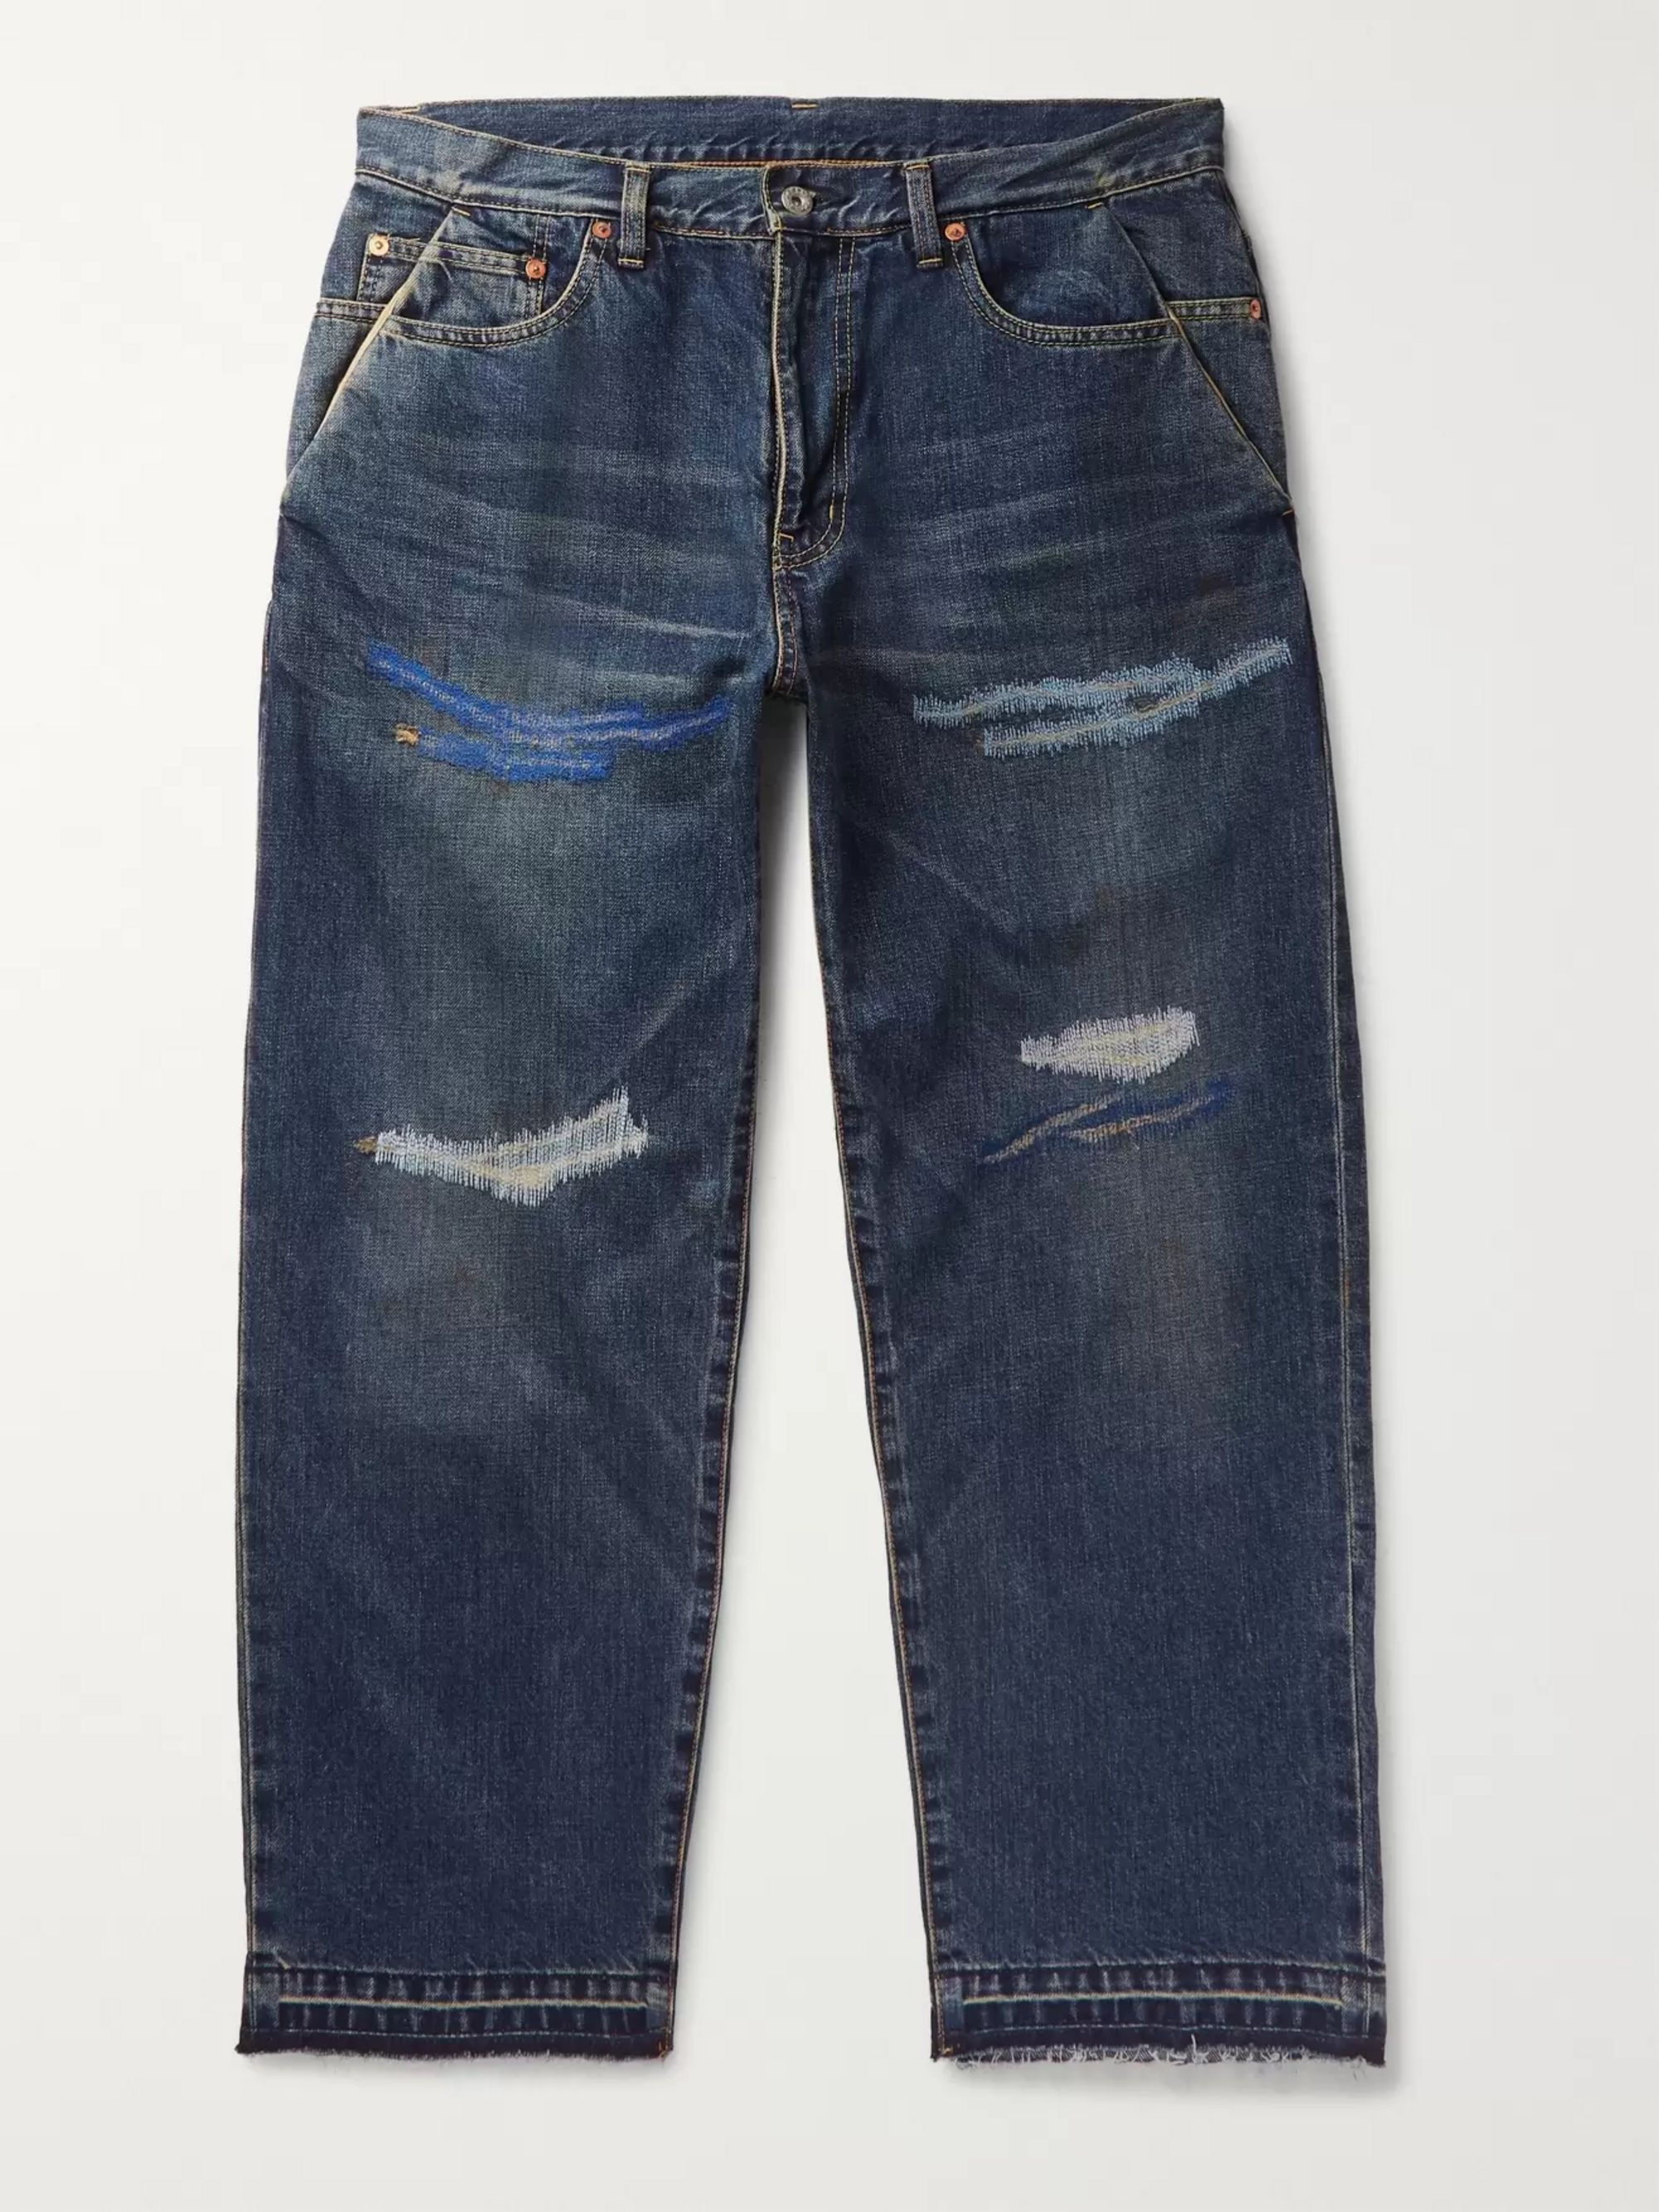 Beams Embroidered Distressed Denim Jeans